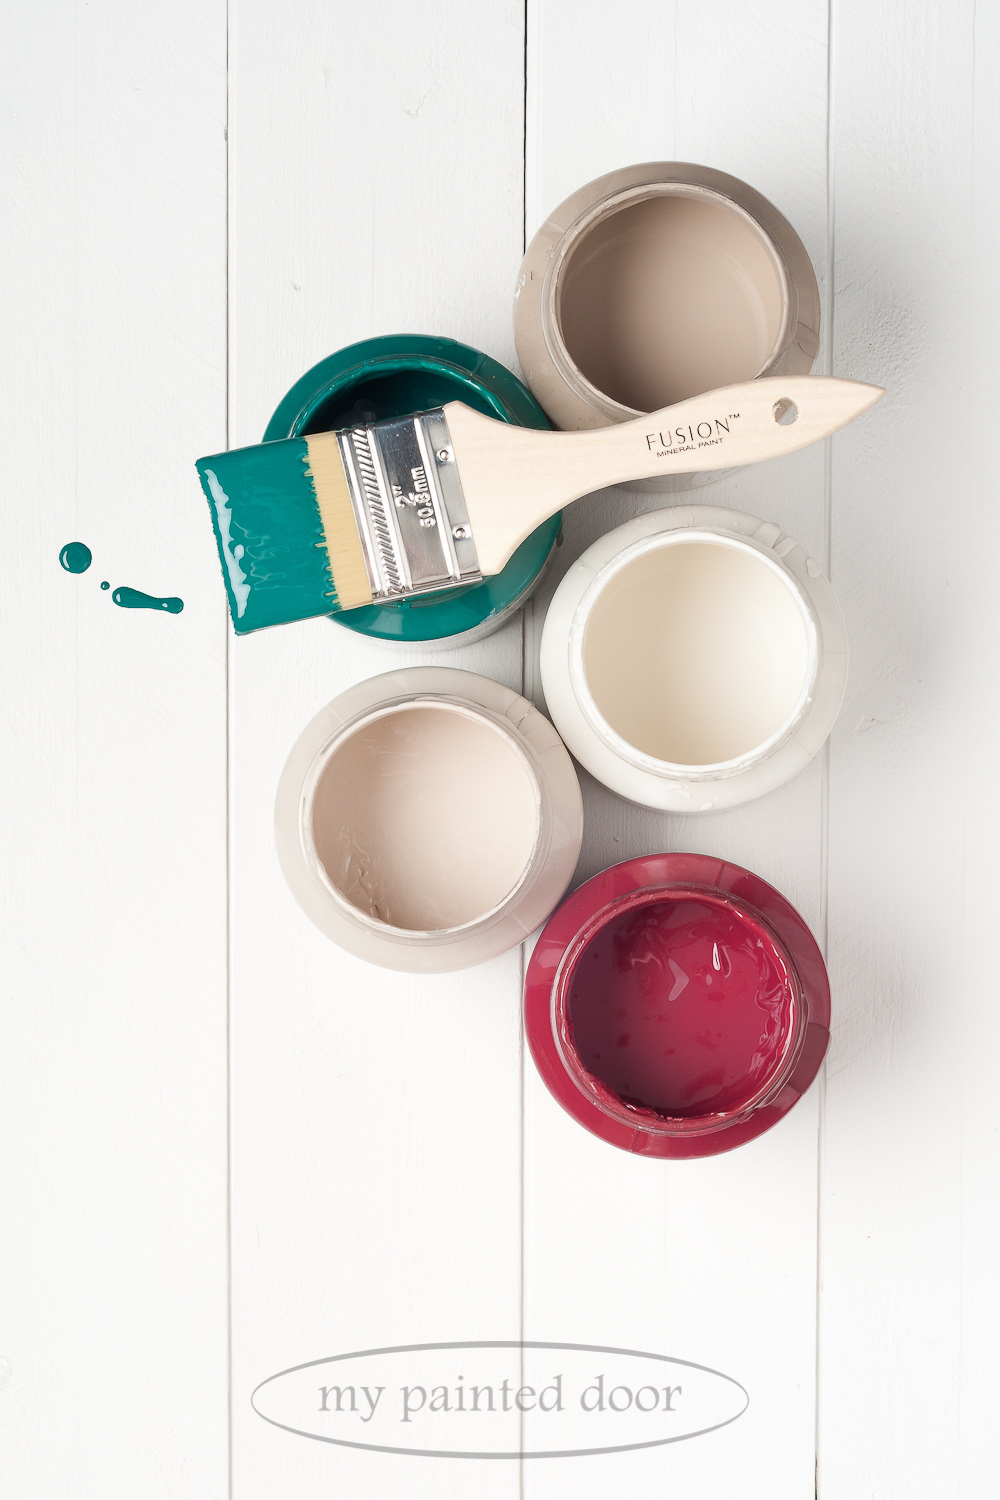 Fusion Mineral Paint Renfrew Blue,Algonquin,Raw Silk,Cathedral Taupe and Cranberry